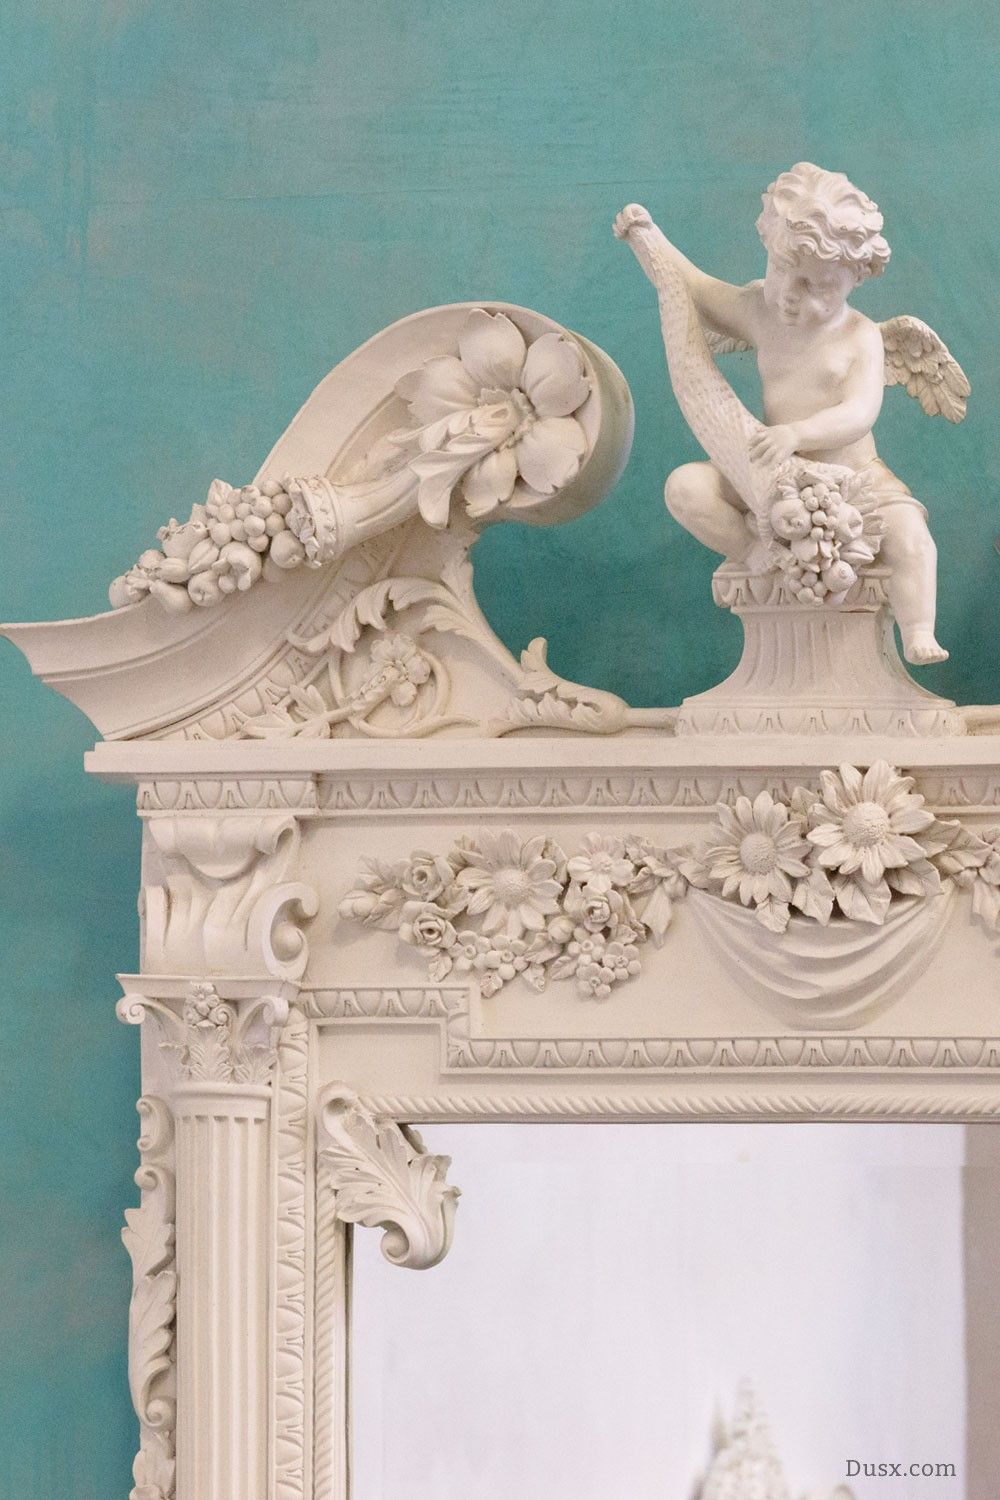 Putti french rococo white mirror for sale at dusx dusx putti french rococo white mirror for sale at dusx dusx aloadofball Images